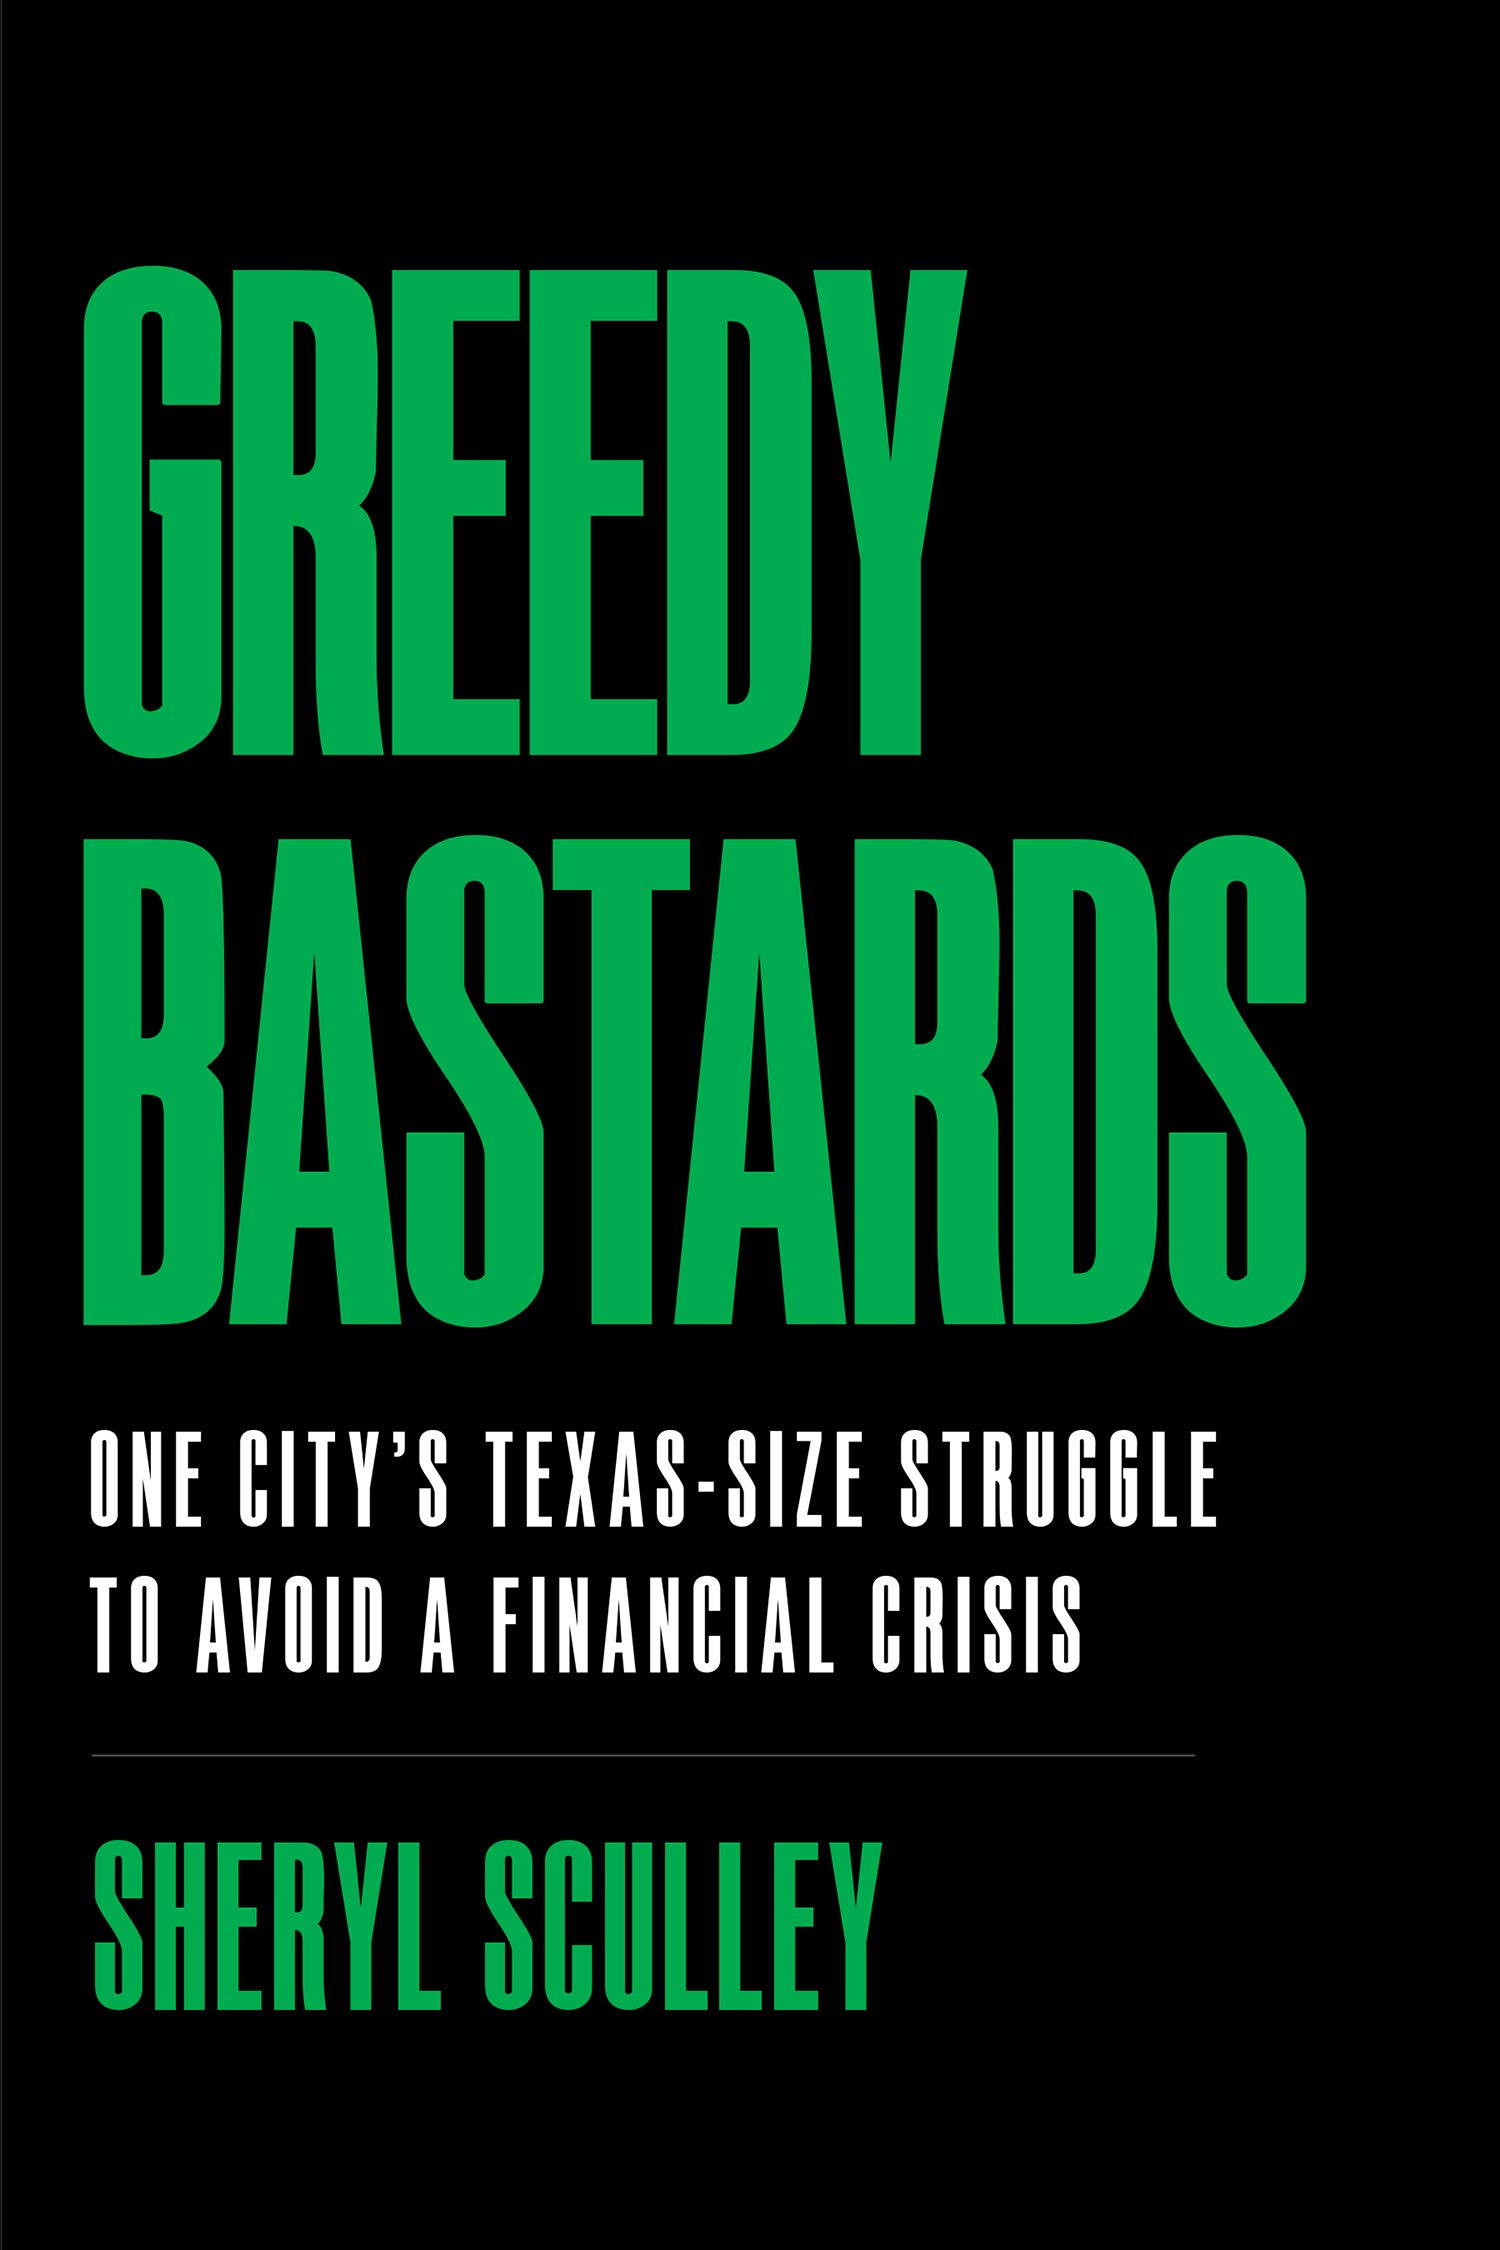 Greedy Bastards: One City's Texas-Size Struggle to Avoid a Financial Crisis